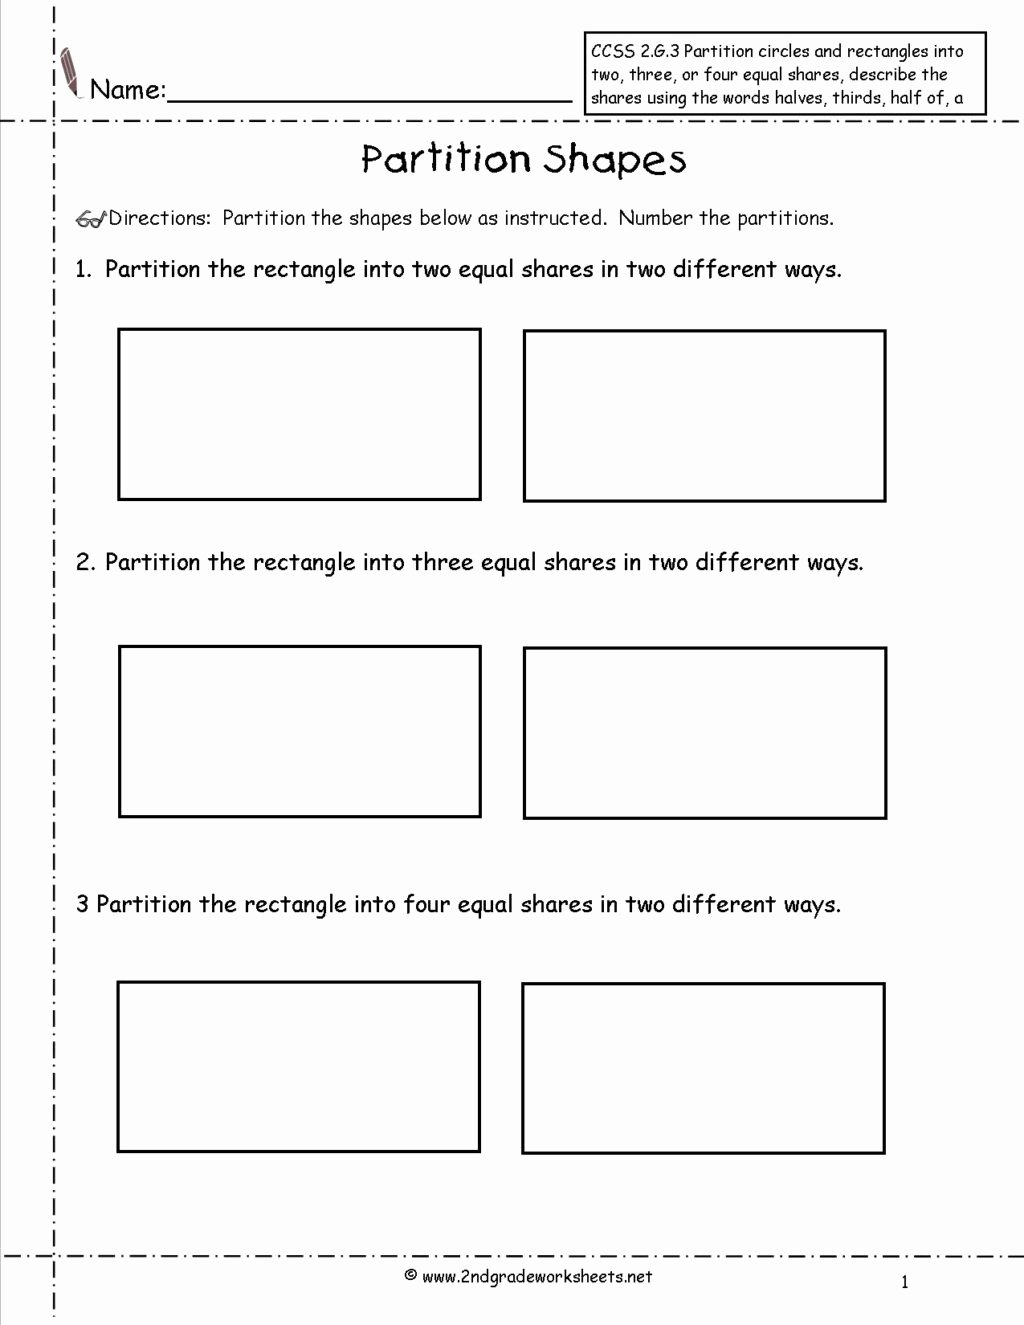 Geometric Shapes Worksheets 2nd Grade Ideas Worksheet 2nd Grade Geometry Worksheets Ccss G Partition